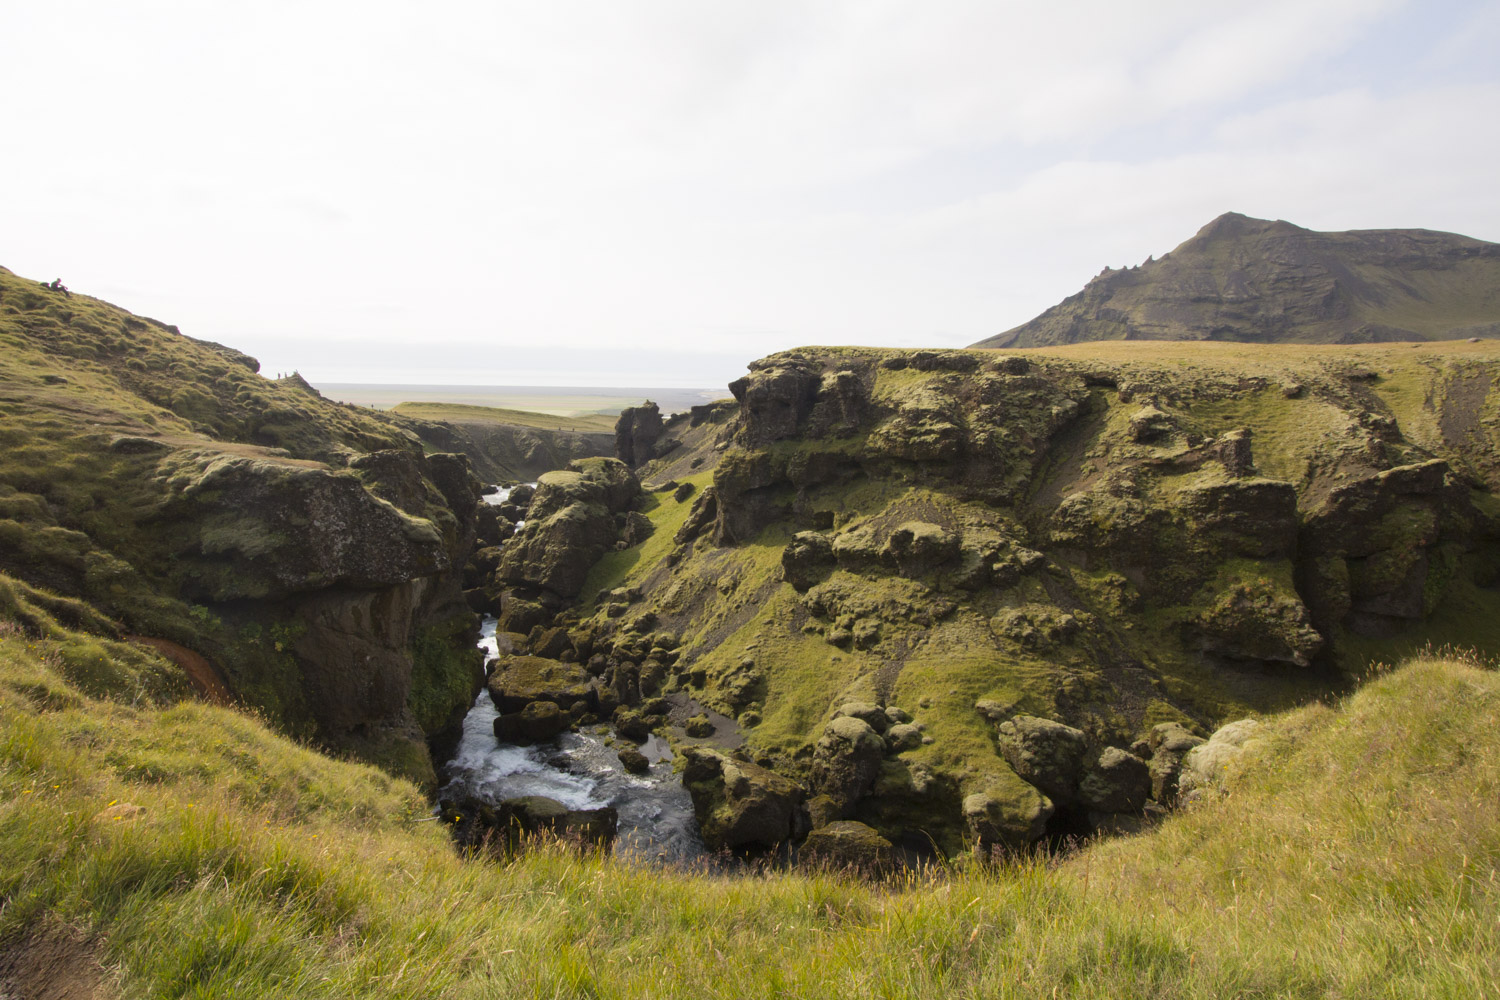 The start of an 18km hike at Skogafoss. Explored dozens of waterfalls until our legs were too tired to continue.